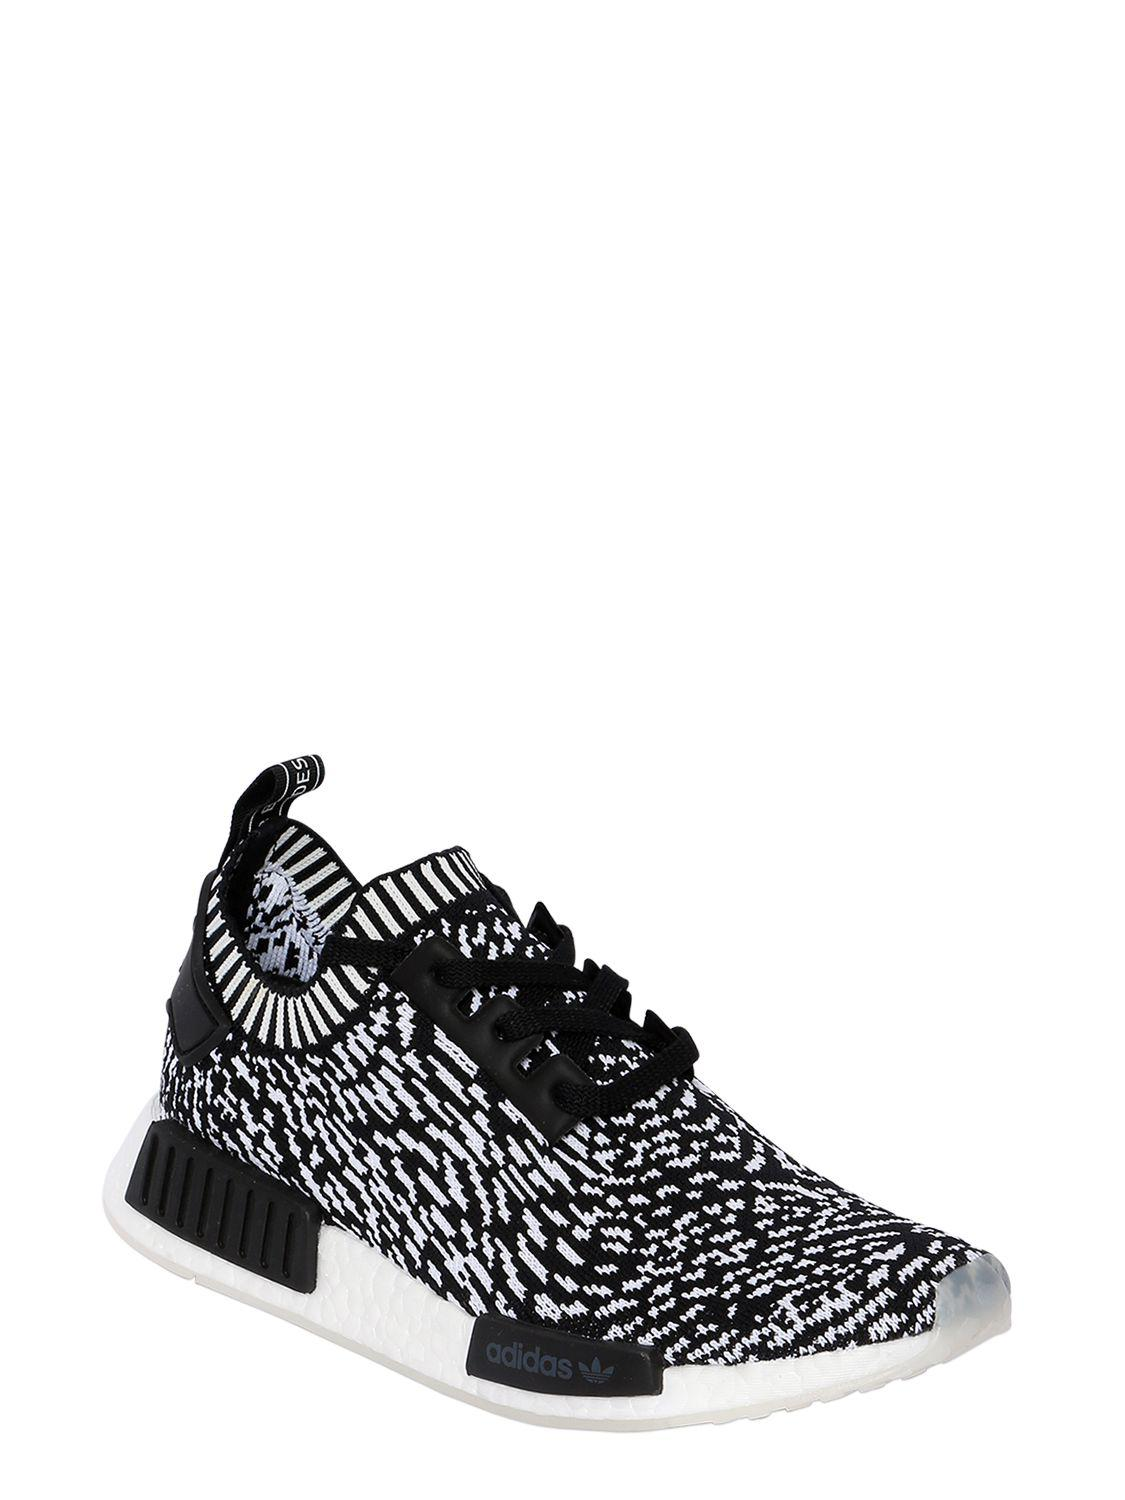 5a9039e8a adidas Originals Nmd R1 Primeknit Sneakers in Black for Men - Lyst